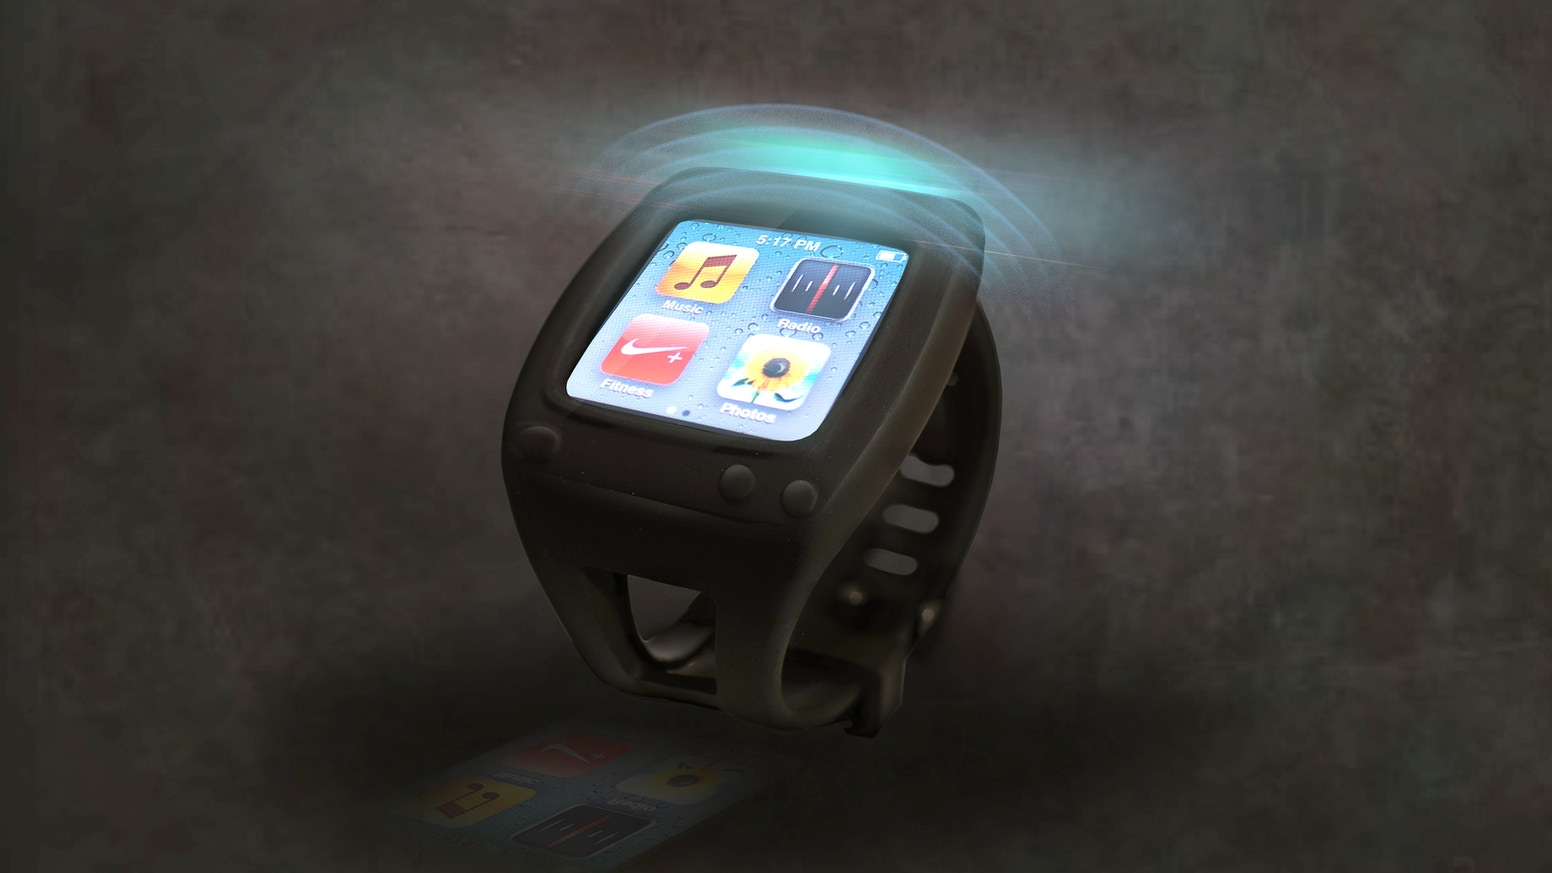 Meet SYRE, The World's First Bluetooth iPod Nano Watch Case